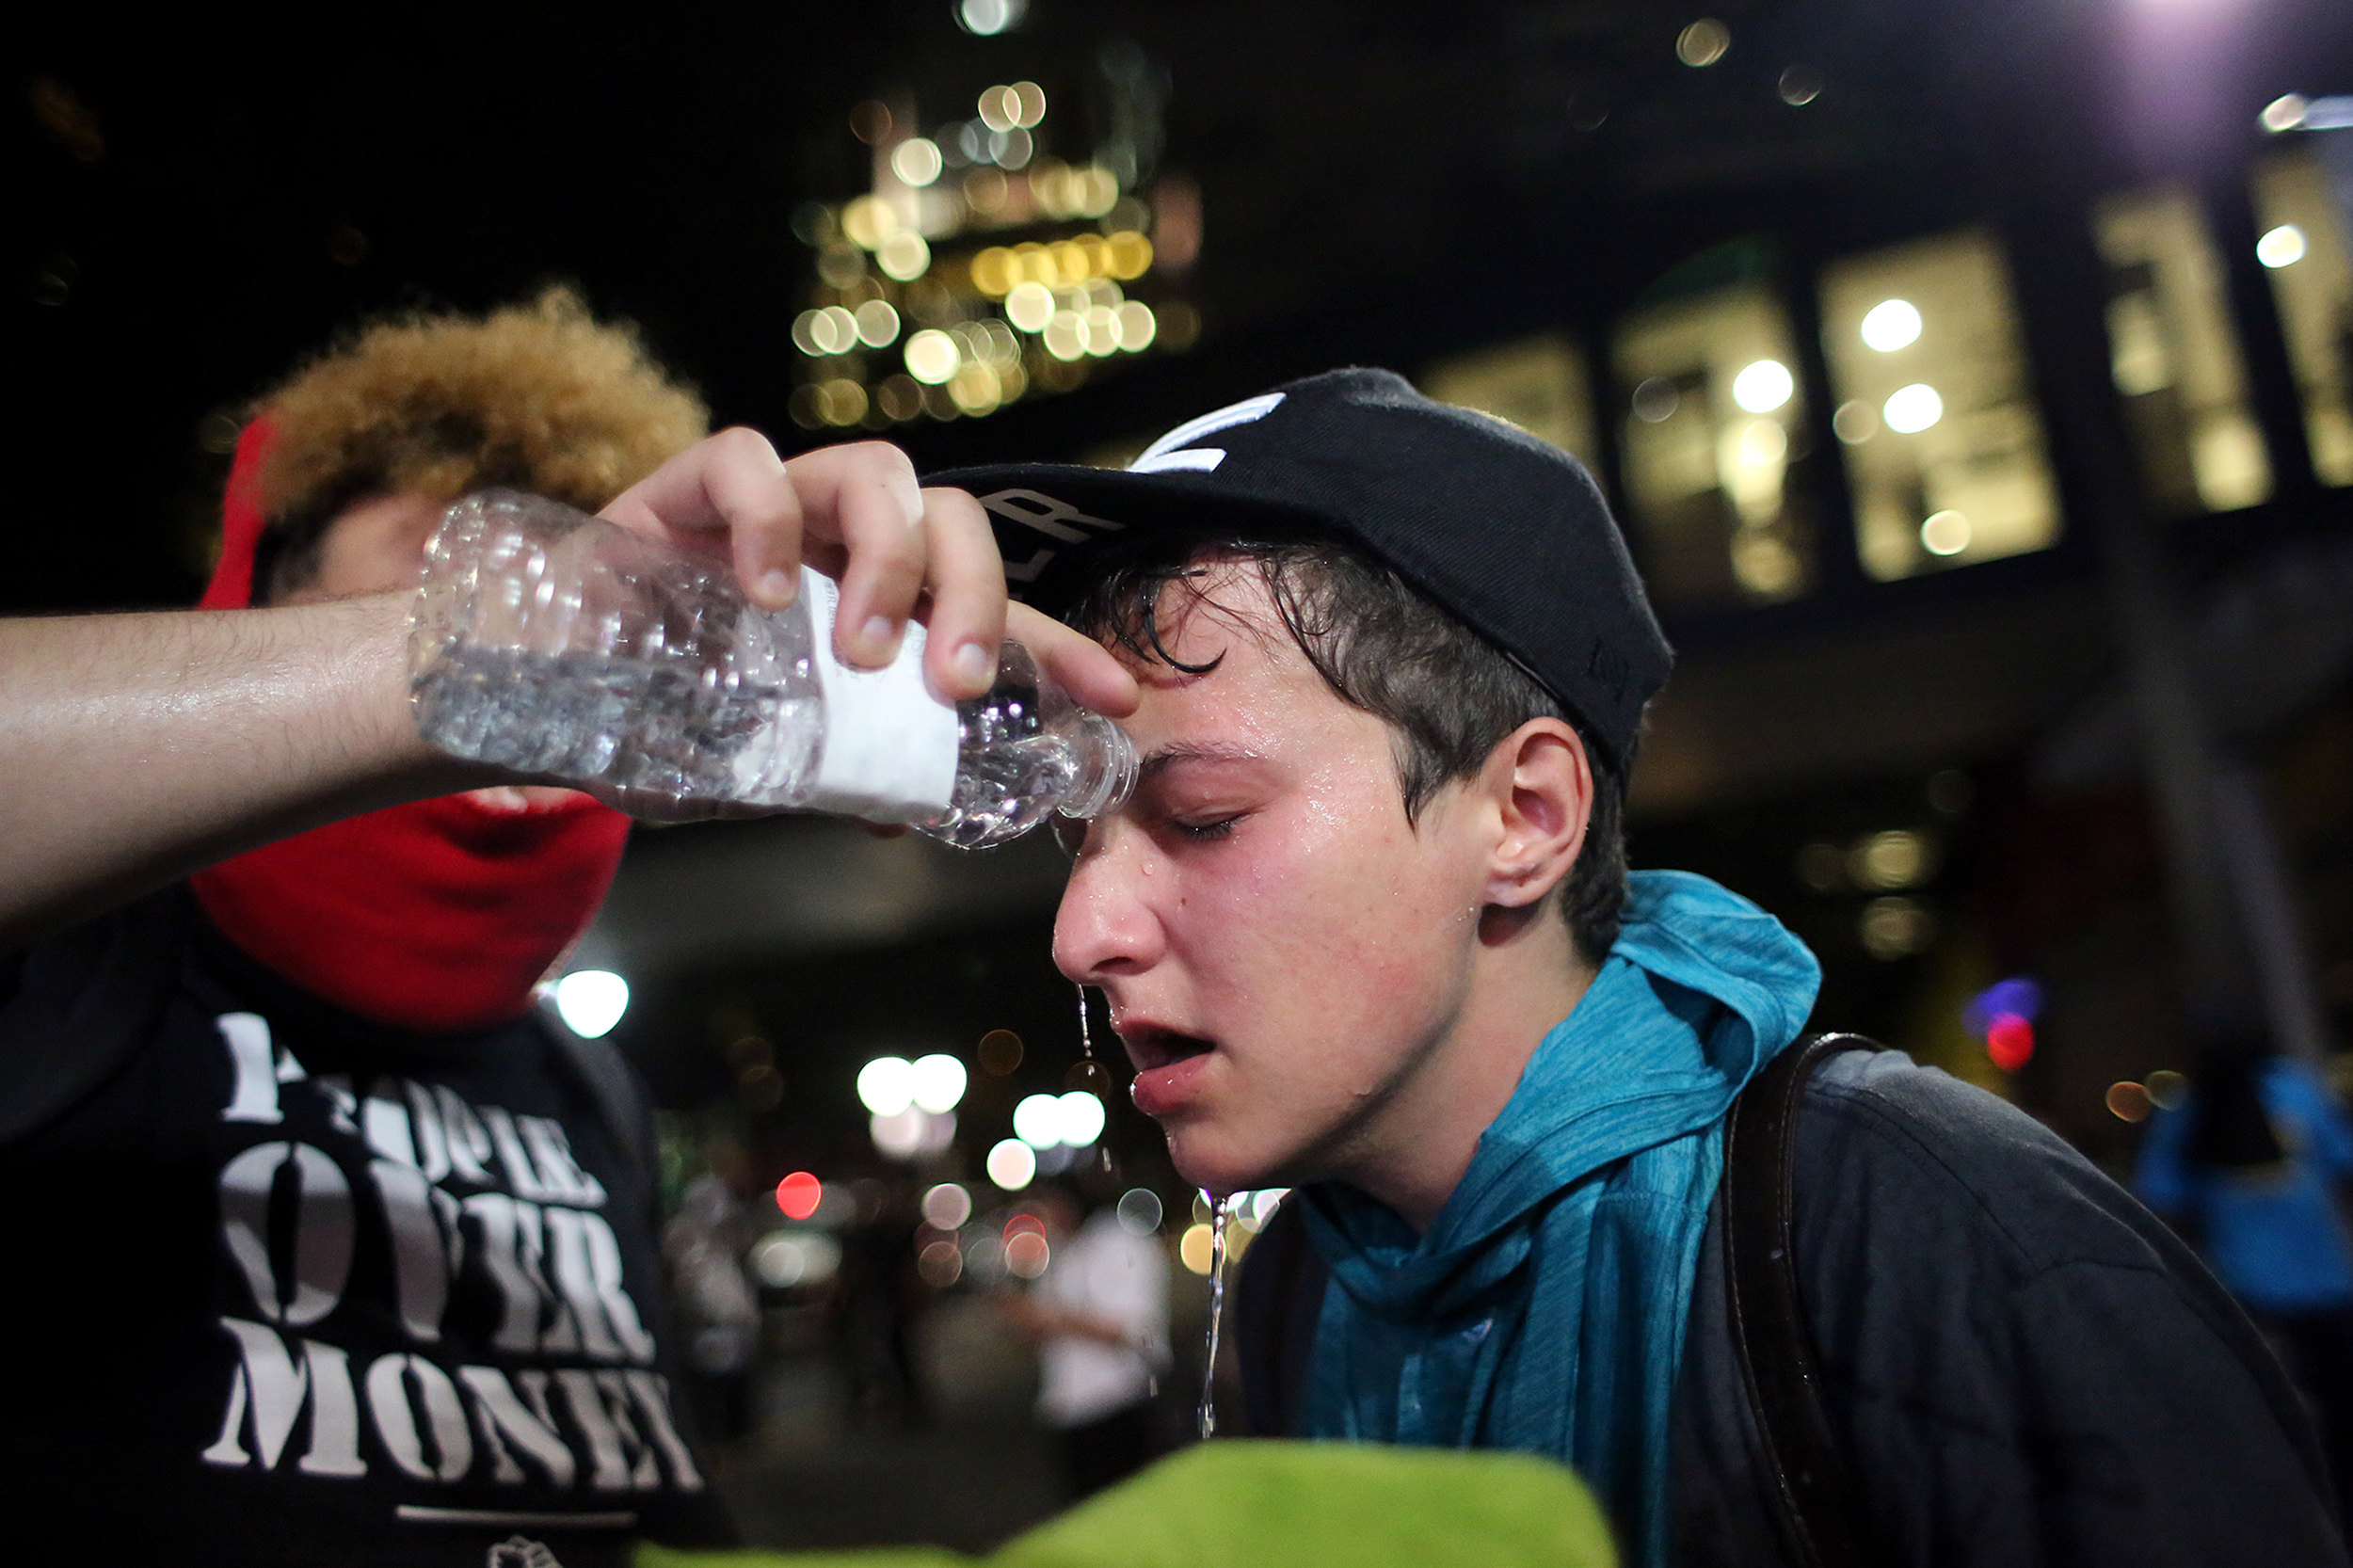 A protester douses a fellow protester's eyes with water after law enforcement deployed tear gas, Sept. 21, 2016, in downtown Charlotte, N.C.